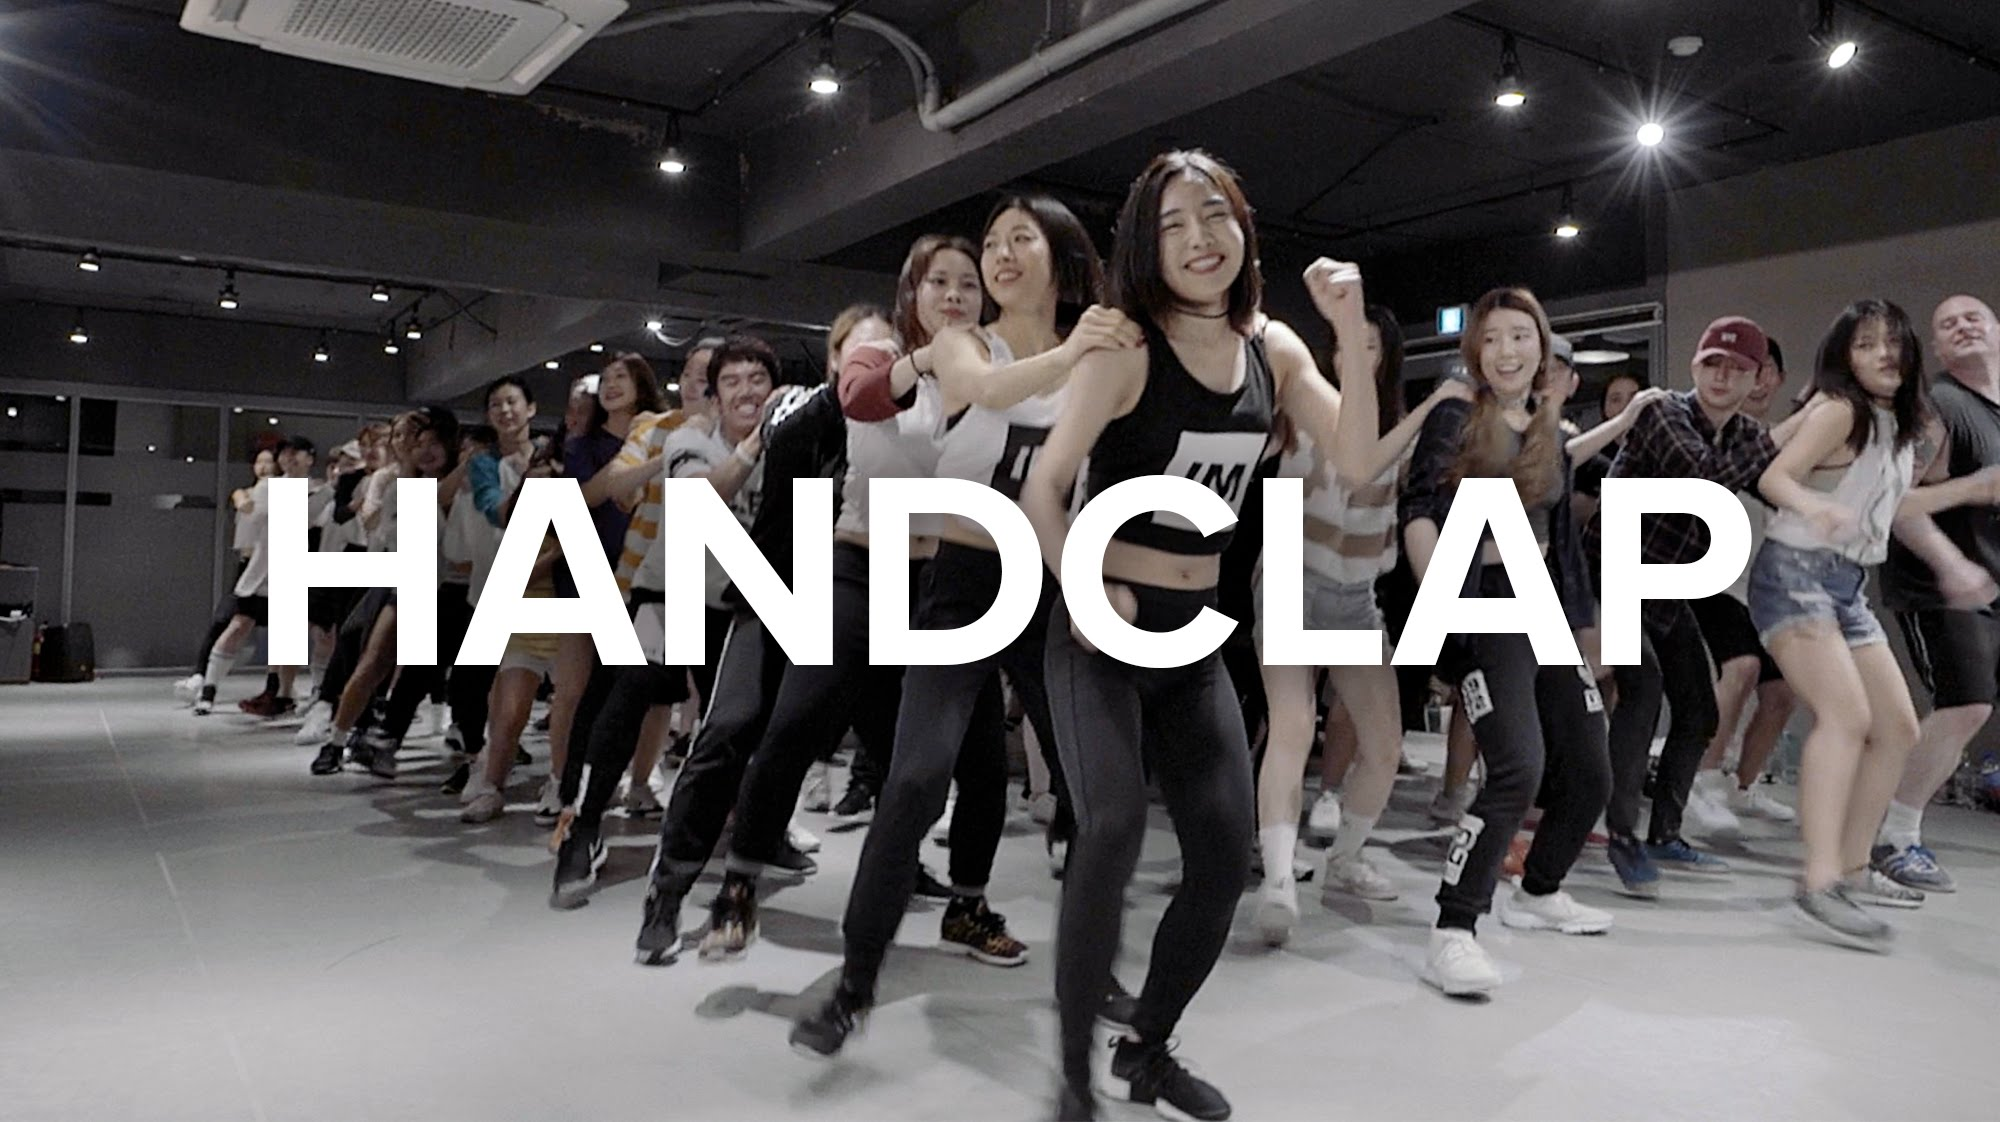 Handclap Fitz And The Tantrums Lia Kim X May J Lee Choreography 1million Dance Studio Outfits And Apparel 1million Outfits Somebody save your soul cause you've been sinning in this city i know too many troubles, all these lovers got you losing fitz and the tantrums truly have created multiple songs that take me back to college and the experimental era of ecstacy and raves. 1million dance studio outfits clothing 1million outfits